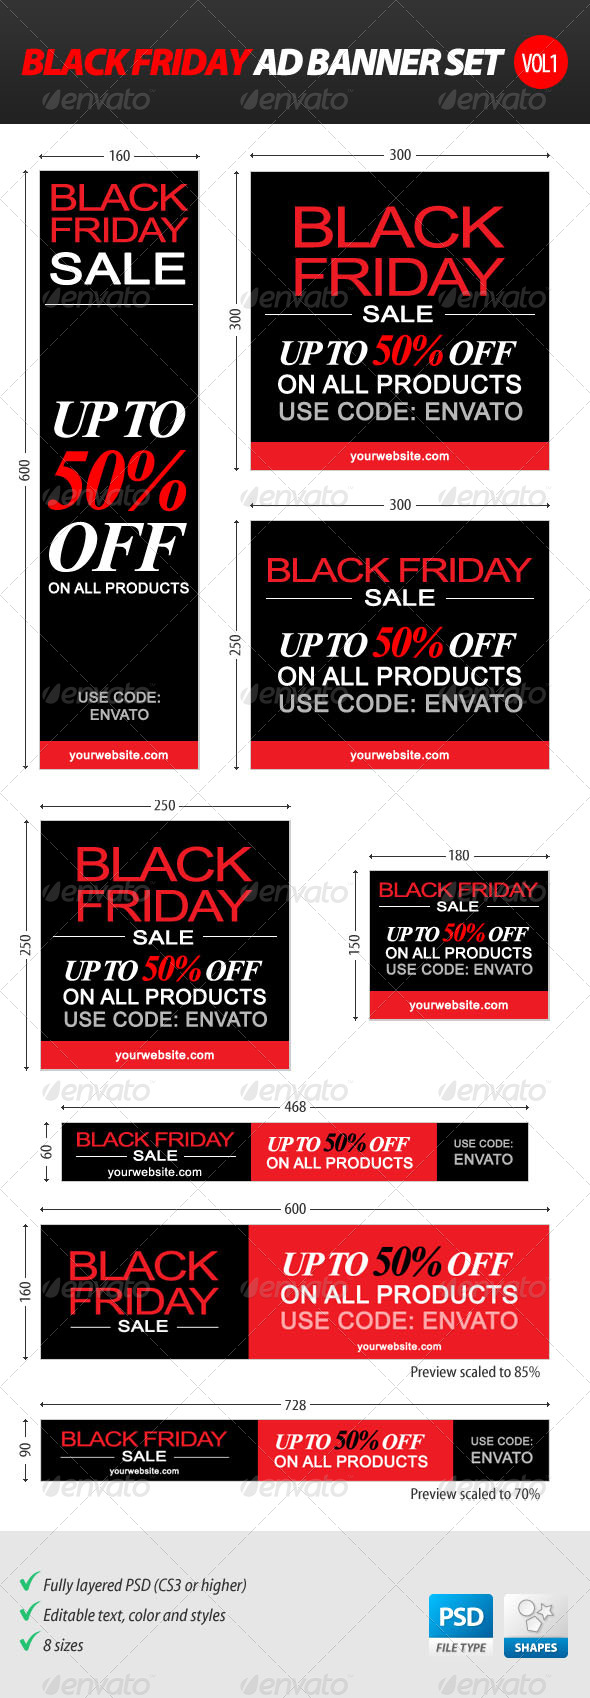 Black Friday Ad Banner Set vol.1 - Banners & Ads Web Elements